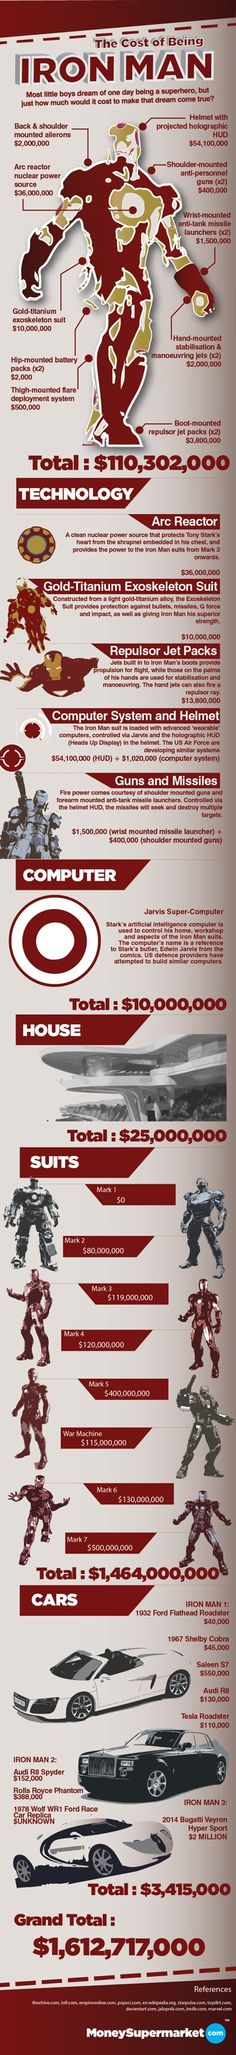 HOW MUCH WOULD IT COST TO BE IRON MAN? (infographic)